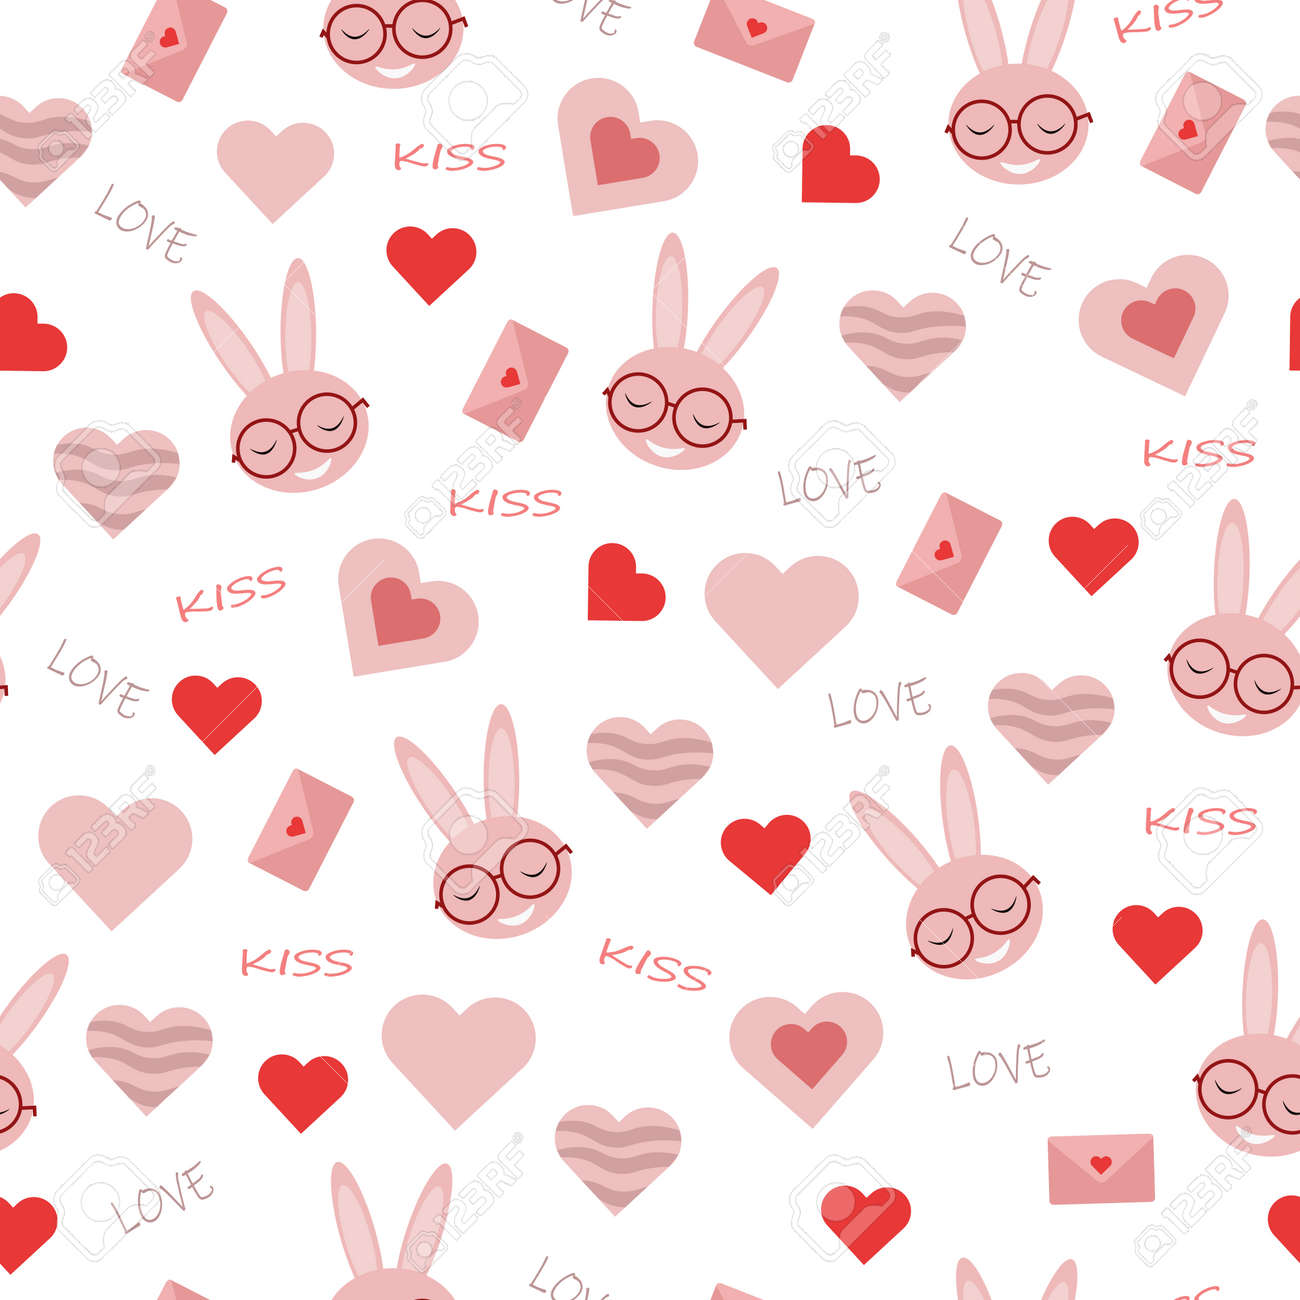 seamless vector pattern with heart shapes pink envelope with rabbit in glasses and inscription love for valentines day holiday - 161212630